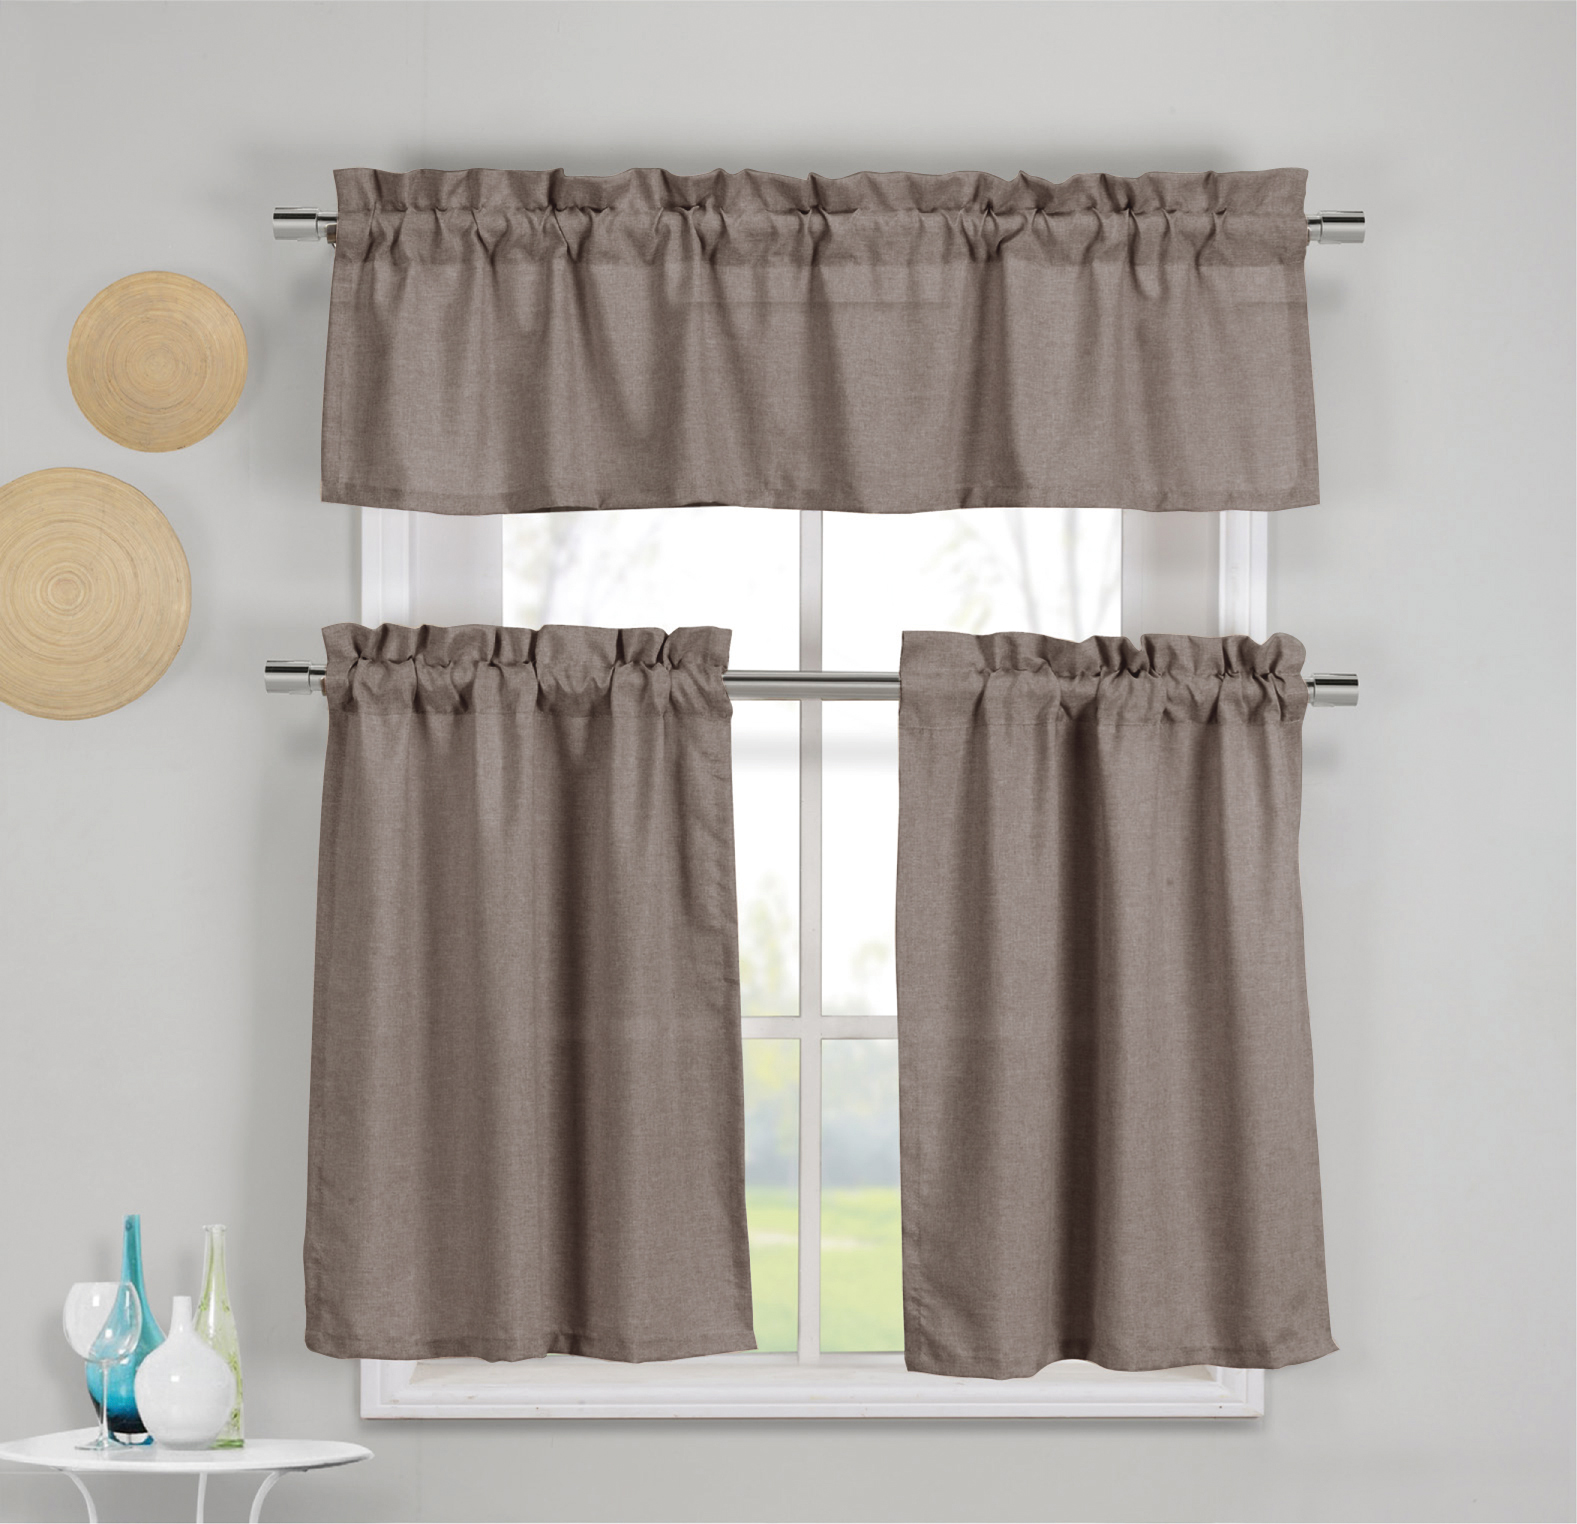 3 Piece Faux Cotton Espresso Brown Kitchen Window Curtain Panel Set with 1 Valance and 2 Tier Panel Curtains